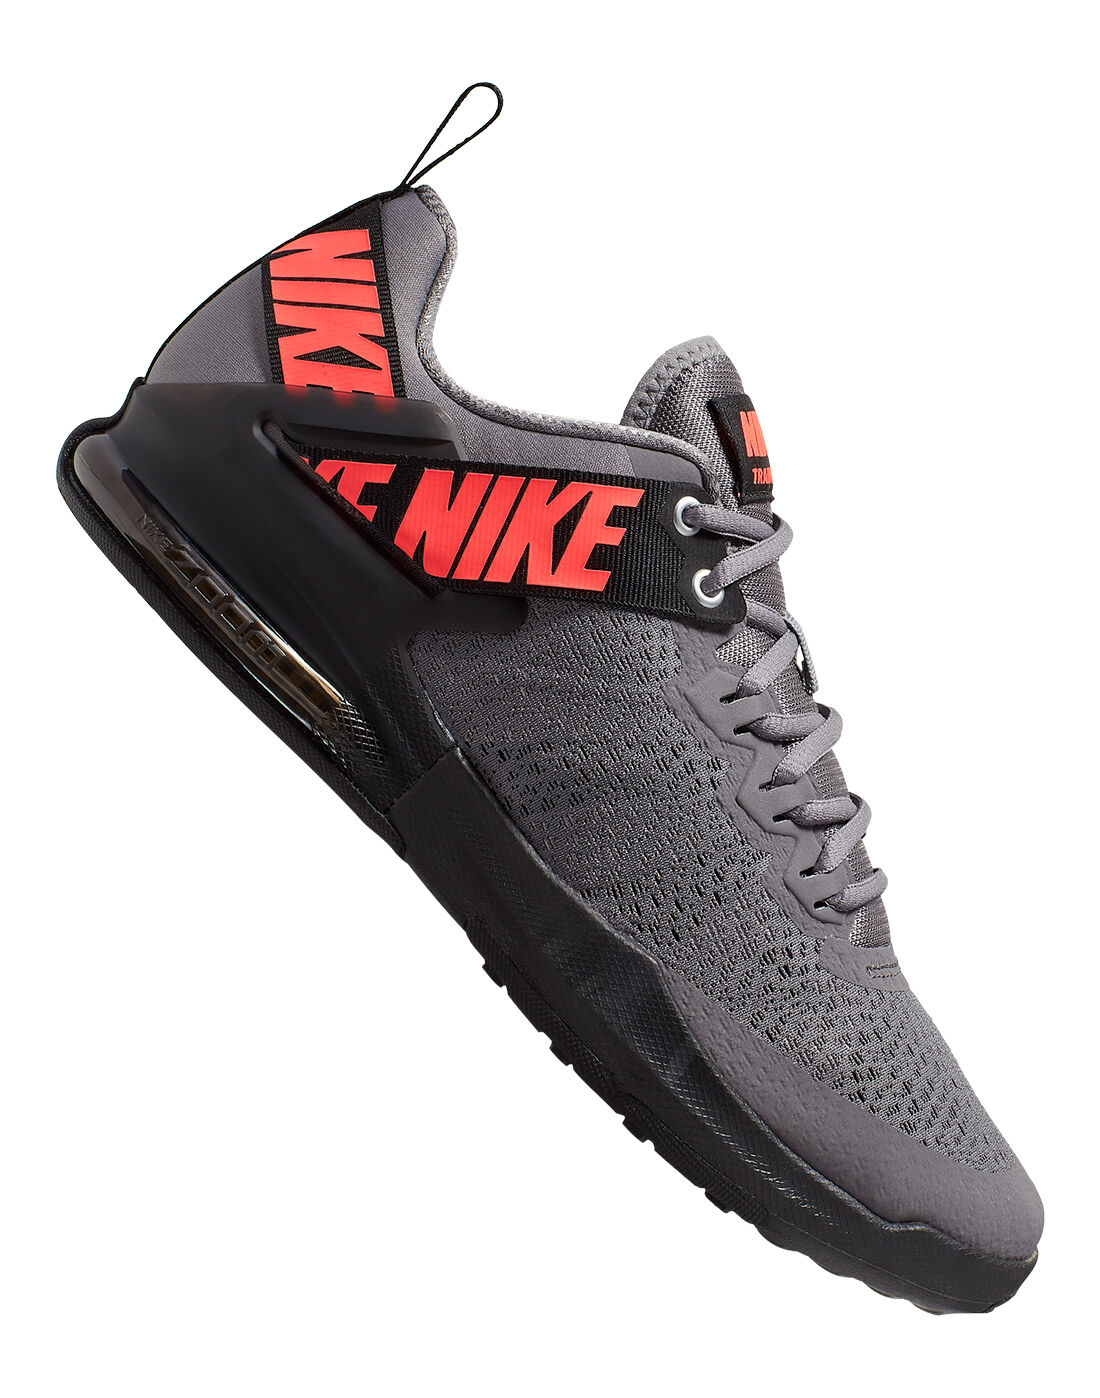 New Men/'s Nike Zoom Domination 2 Training TR Shoes Black Athletic Free Shipping